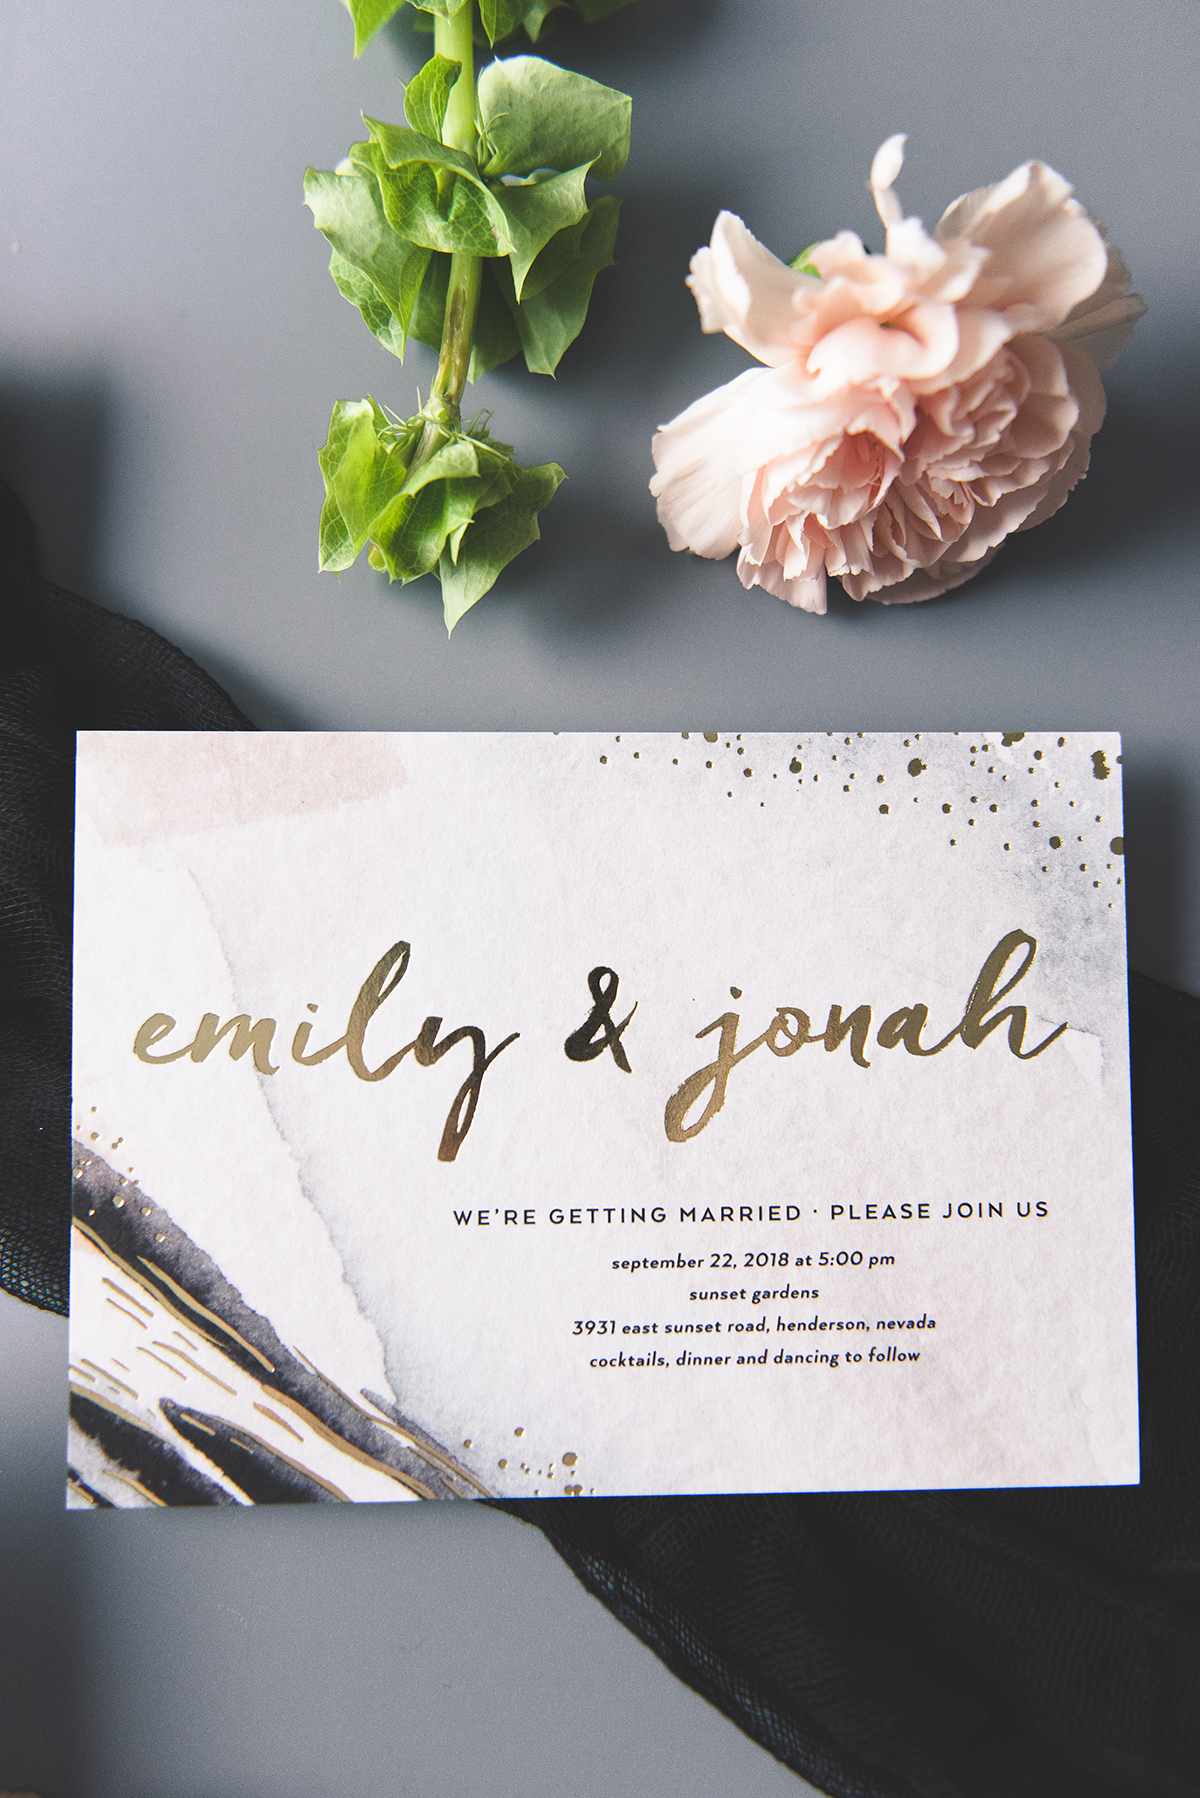 MUST HAVE MONDAY | Swoon-worthy Invitations from Wedding Paper Divas | Pretty Pear Bride